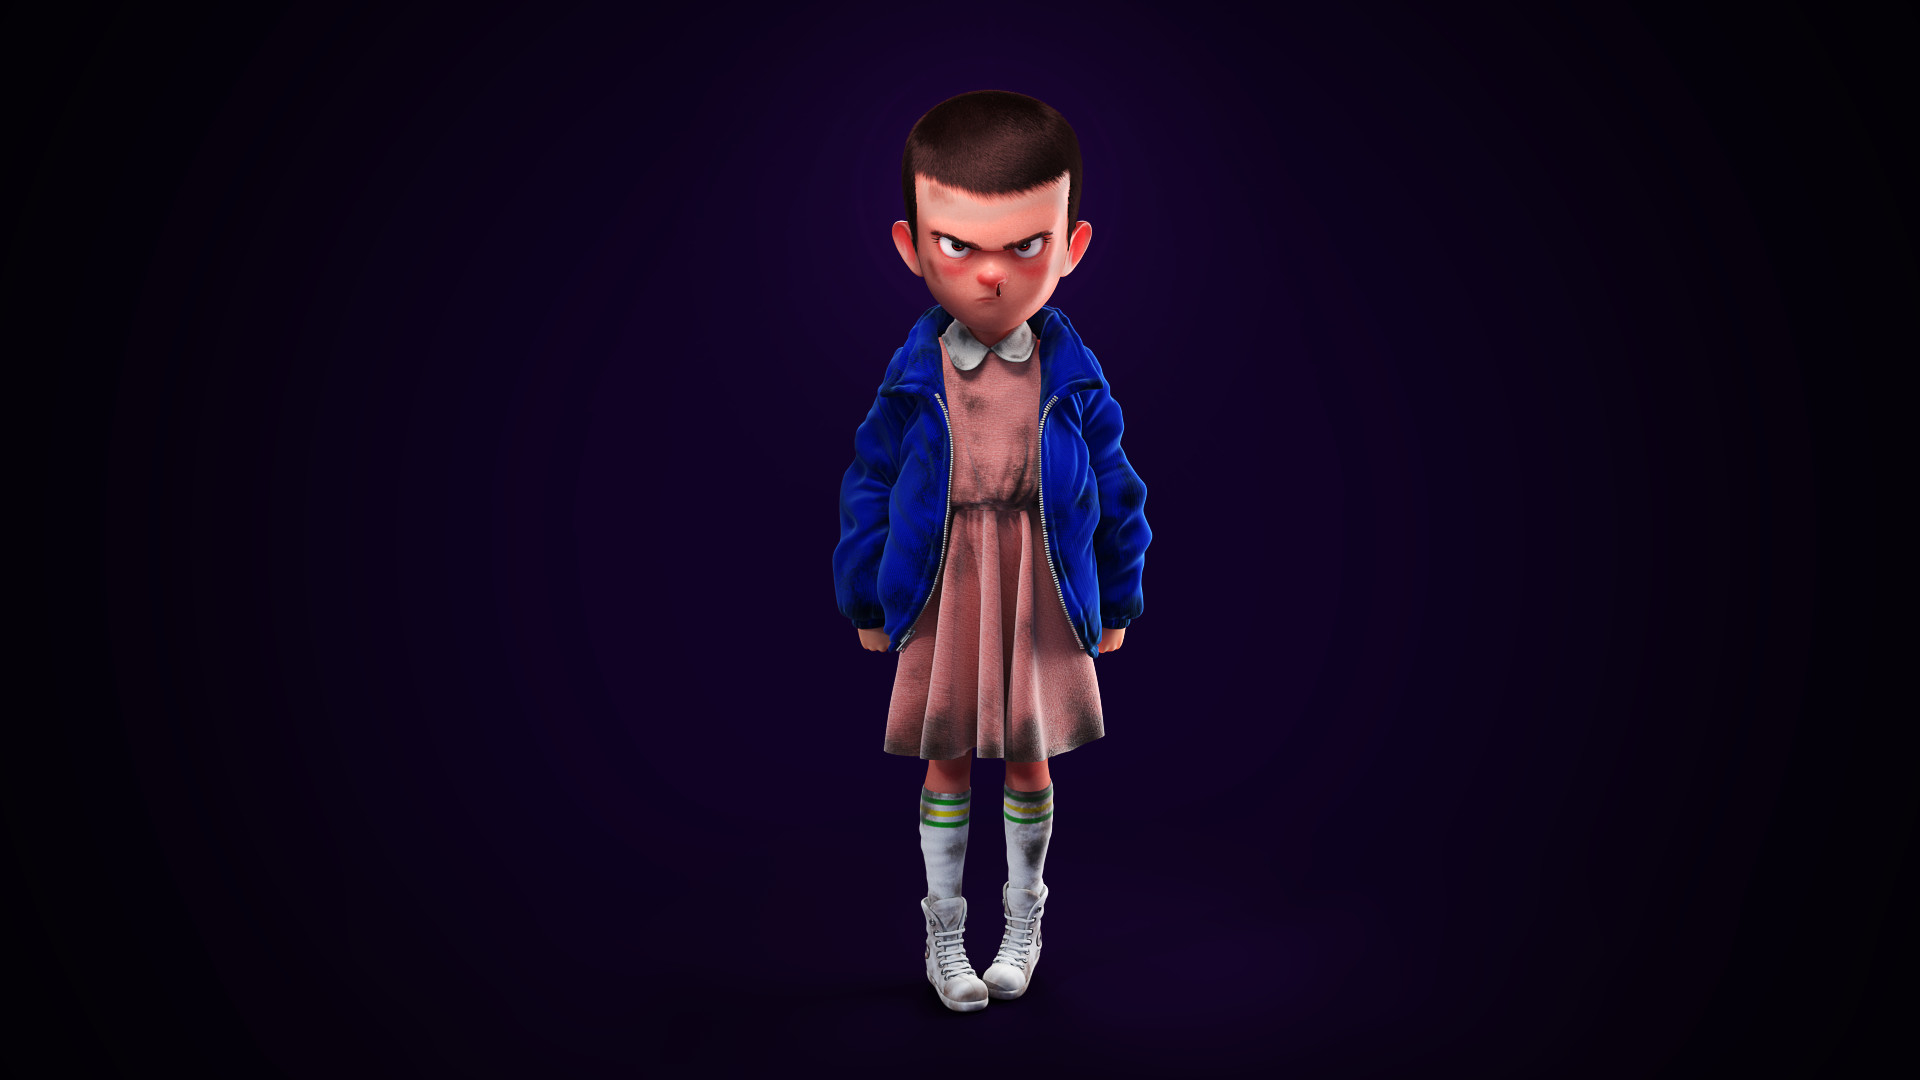 Eleven Stranger Things Art Wallpaper Hd Tv Series 4k